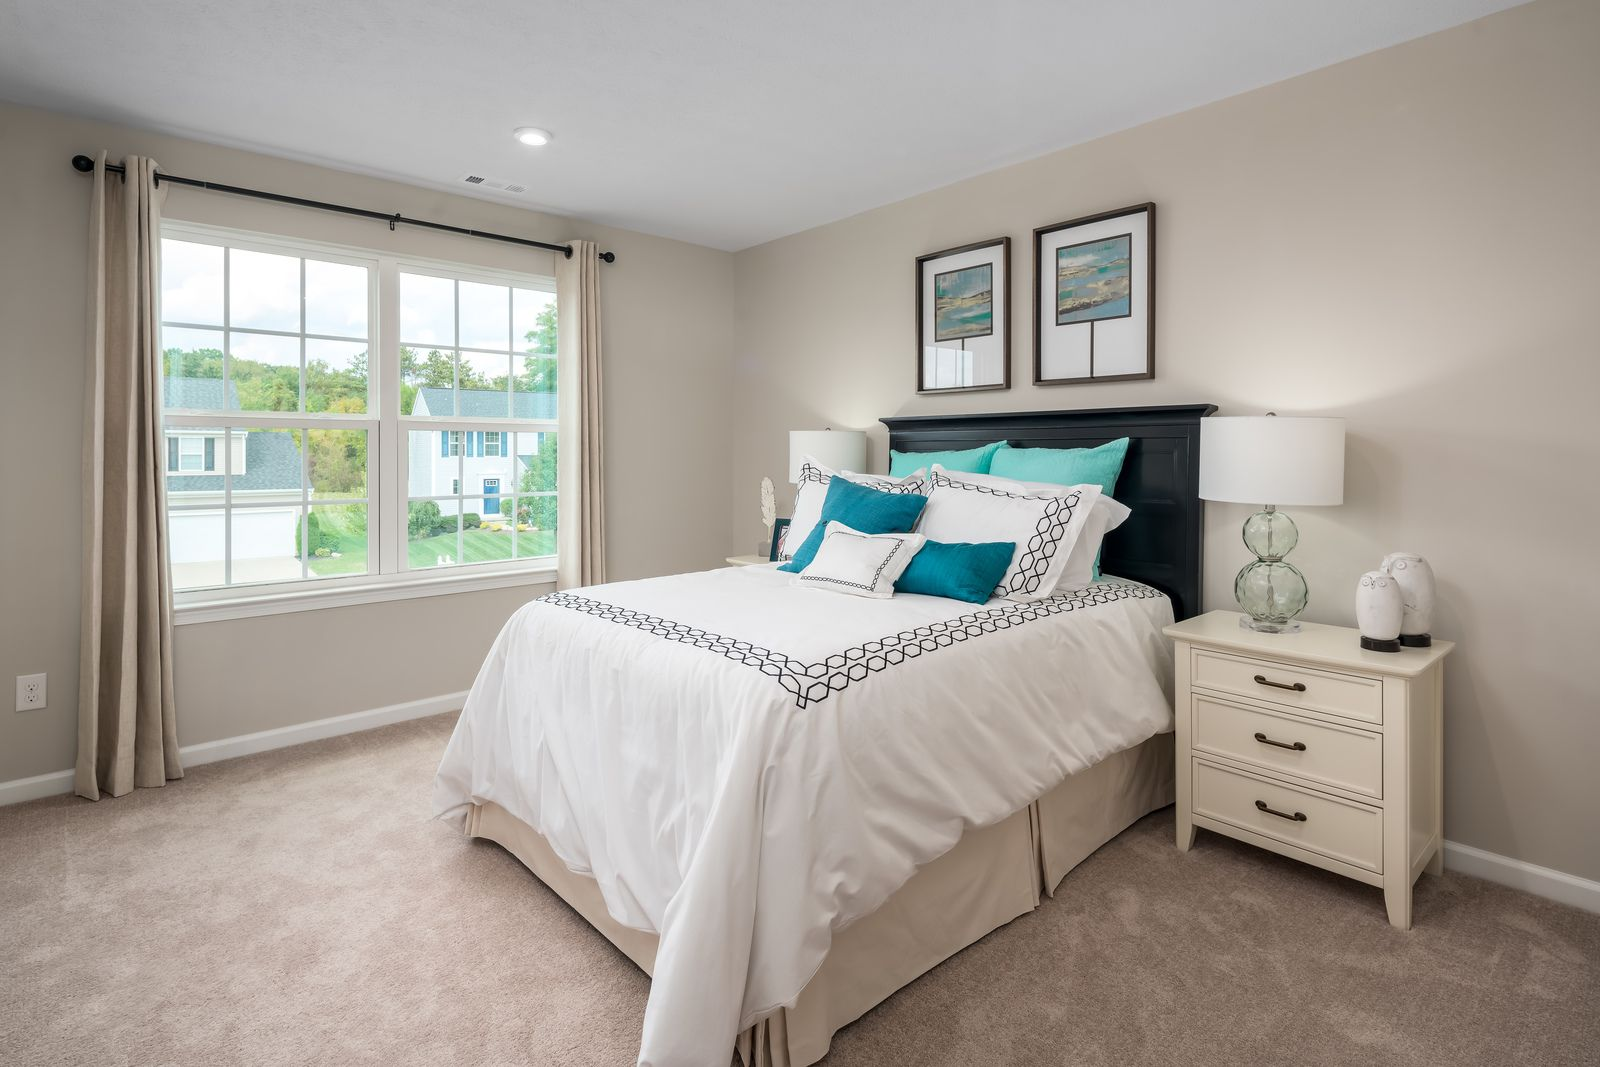 Bedroom featured in the Allegheny By Ryan Homes in Cleveland, OH